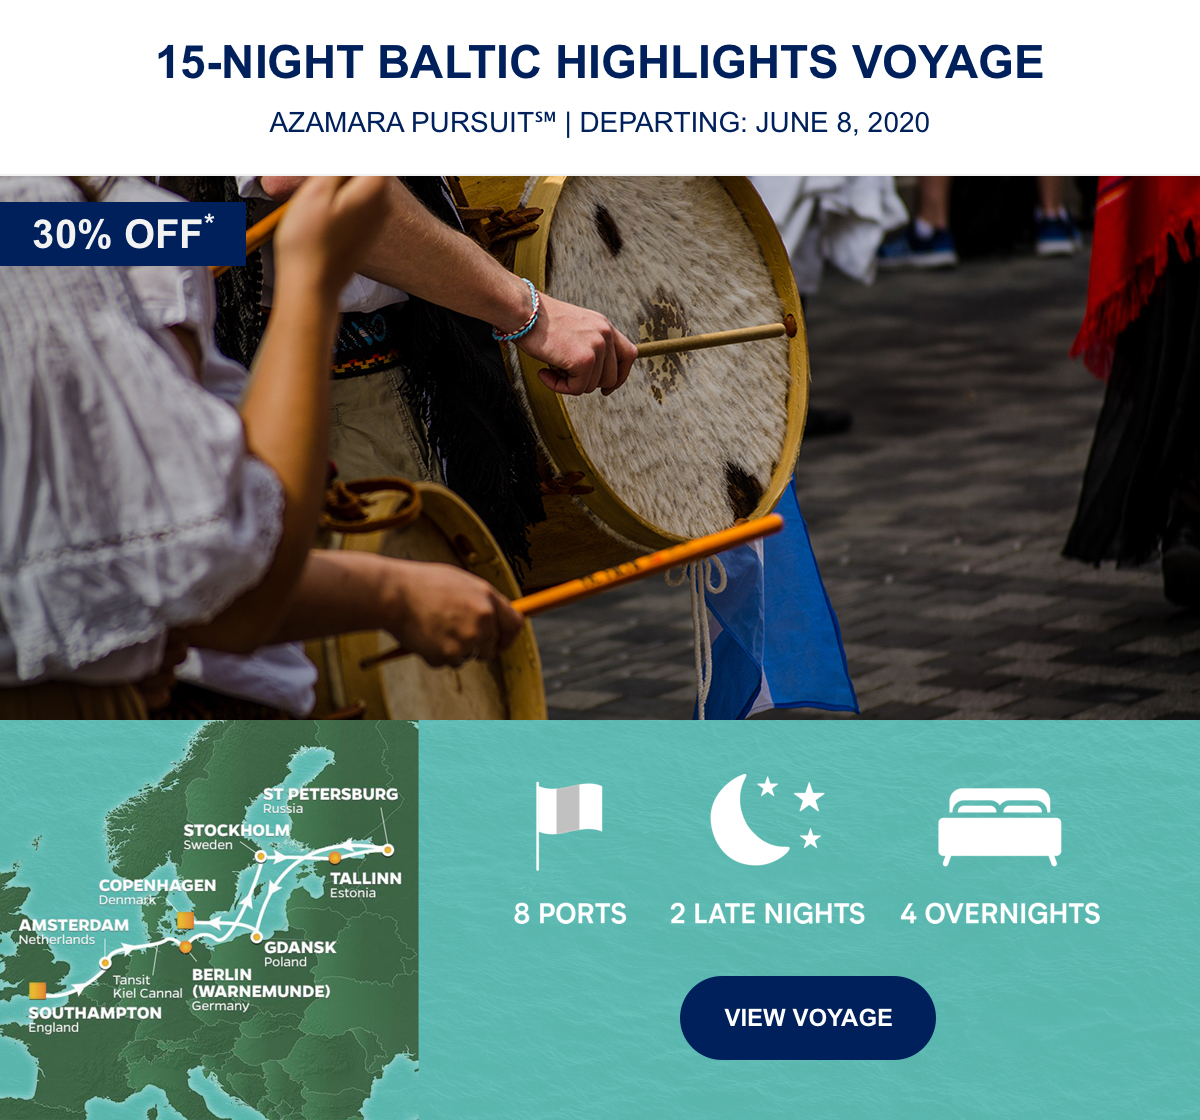 30% OFF* 15-Night Baltic Highlights Voyage Azamara Pursuit℠ | Departing: June 8, 2020 | 8 Ports 2 Late Nights 4 Overnights View Voyage